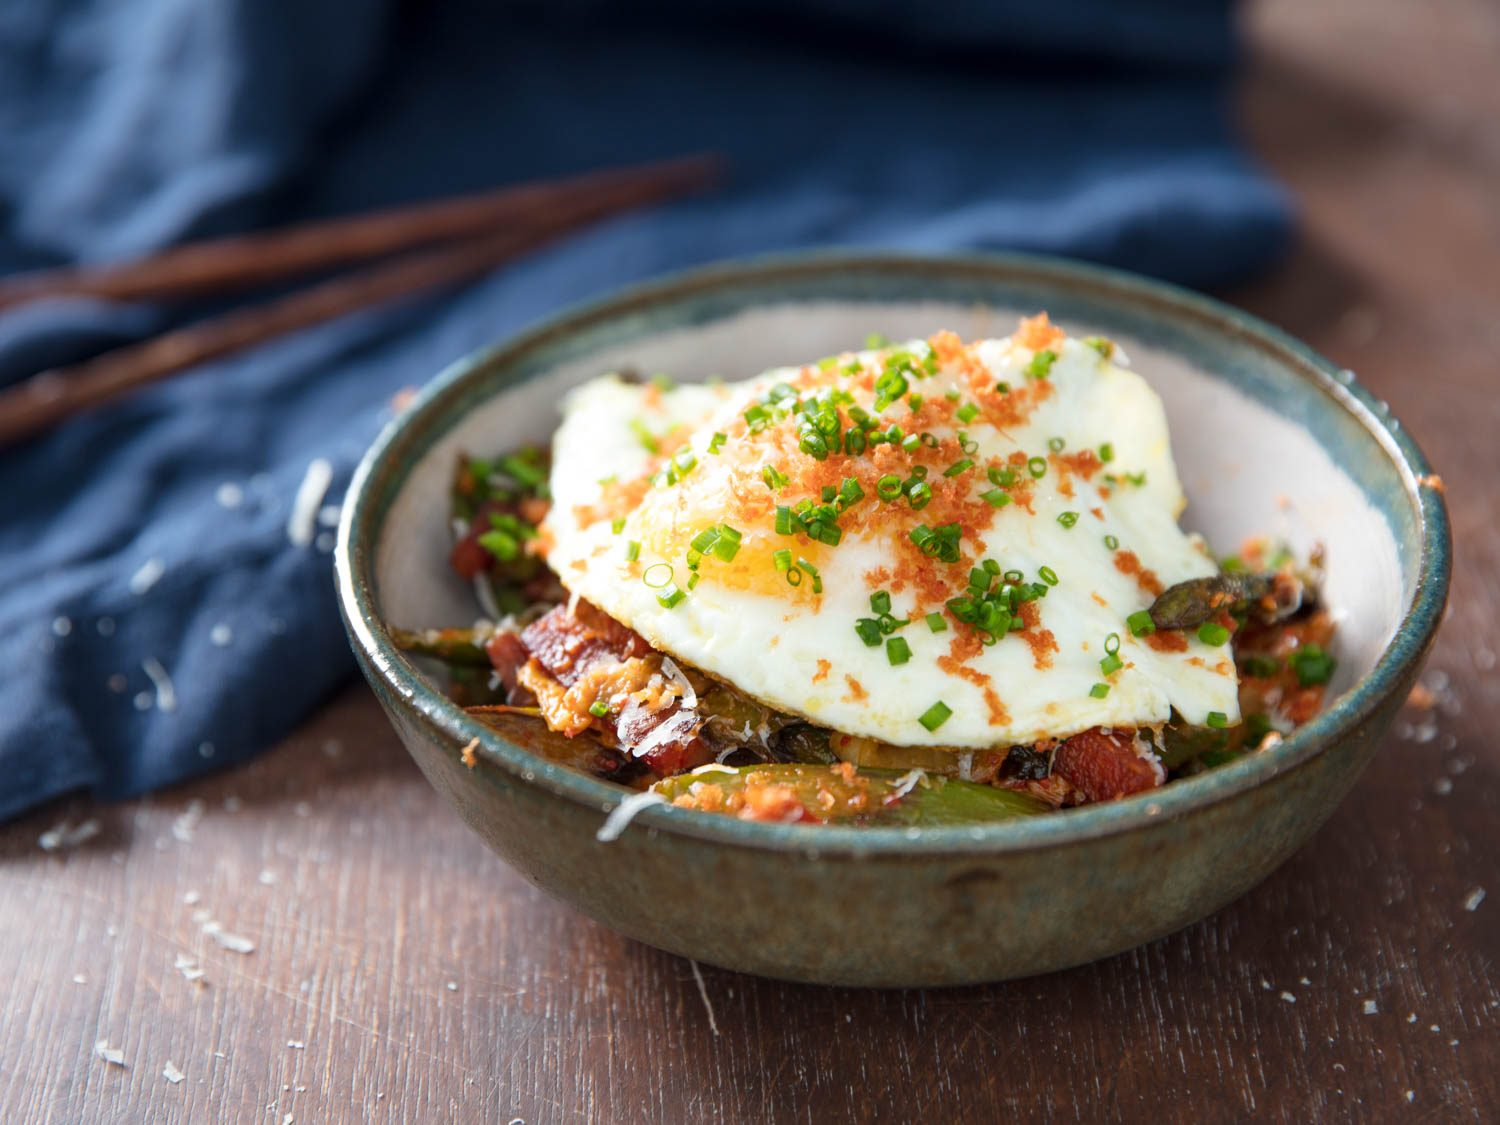 Kimchi and Asparagus Stir-Fry With Spam and Fried Egg